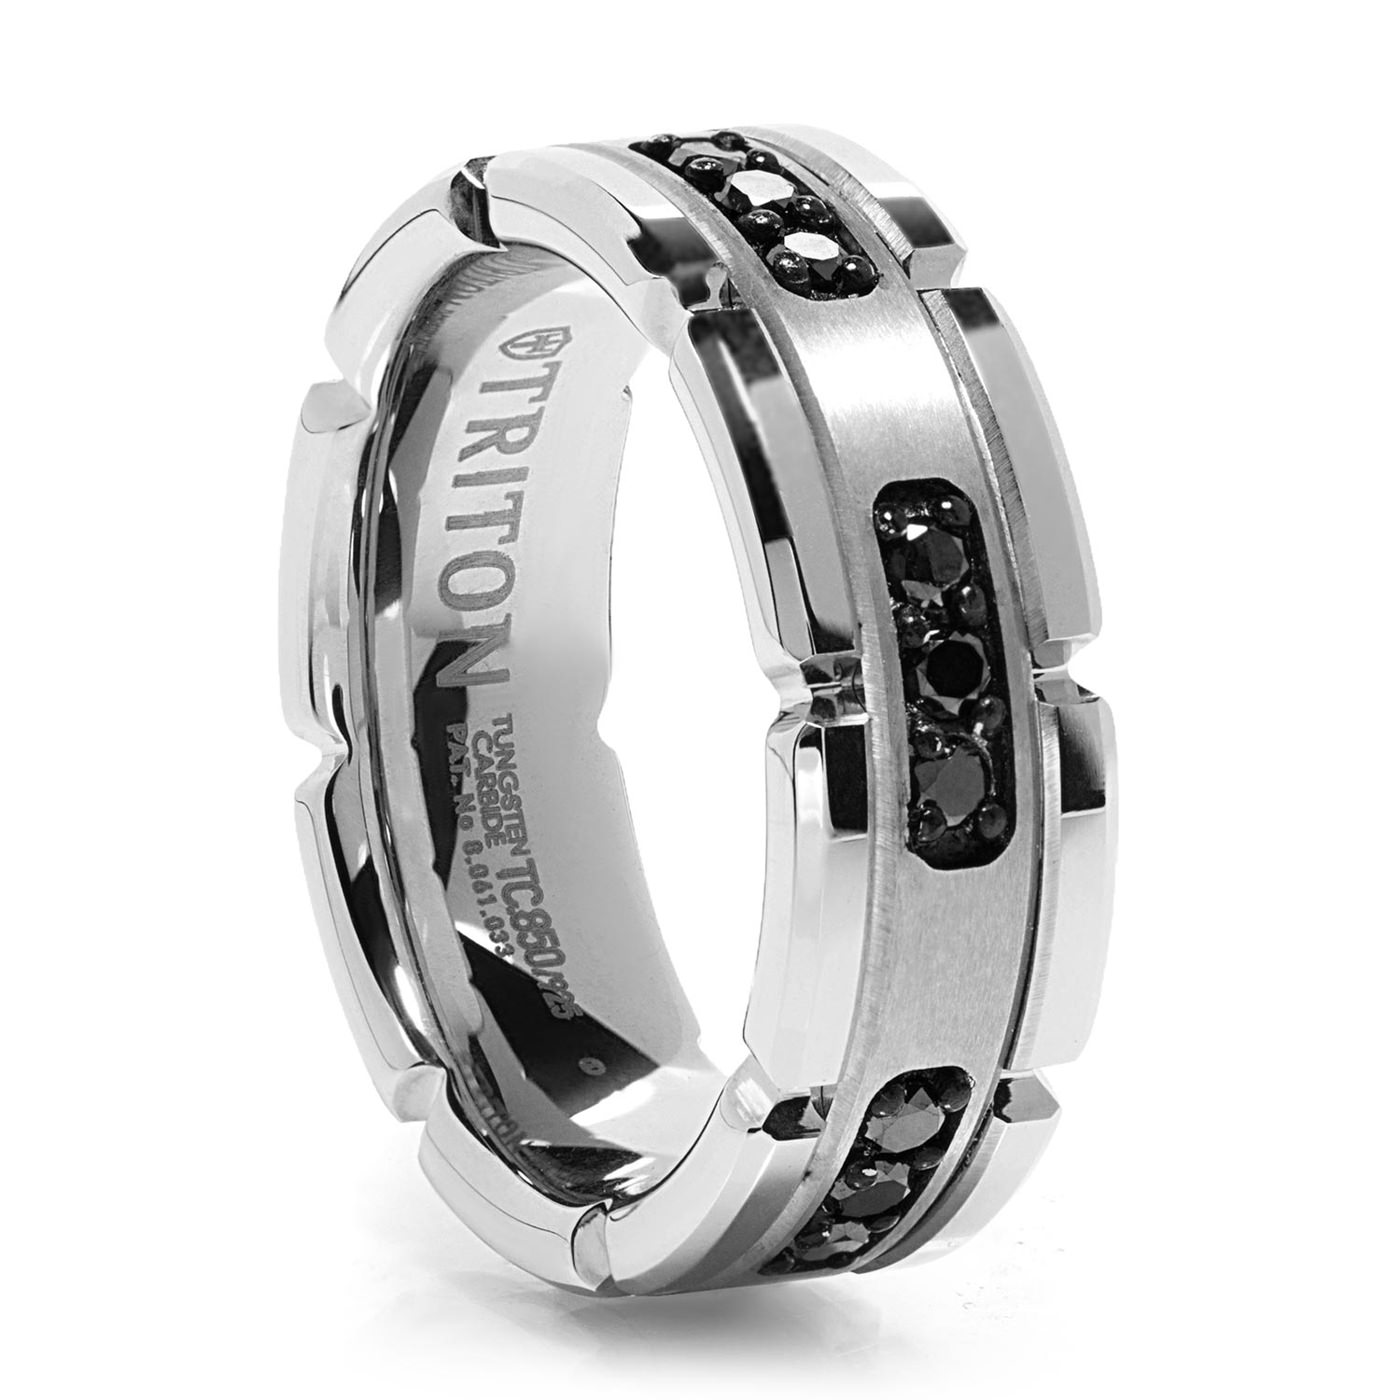 wedding white gold occasion number l category webstore titanium shaped and band black jewellery platinum product rings silver